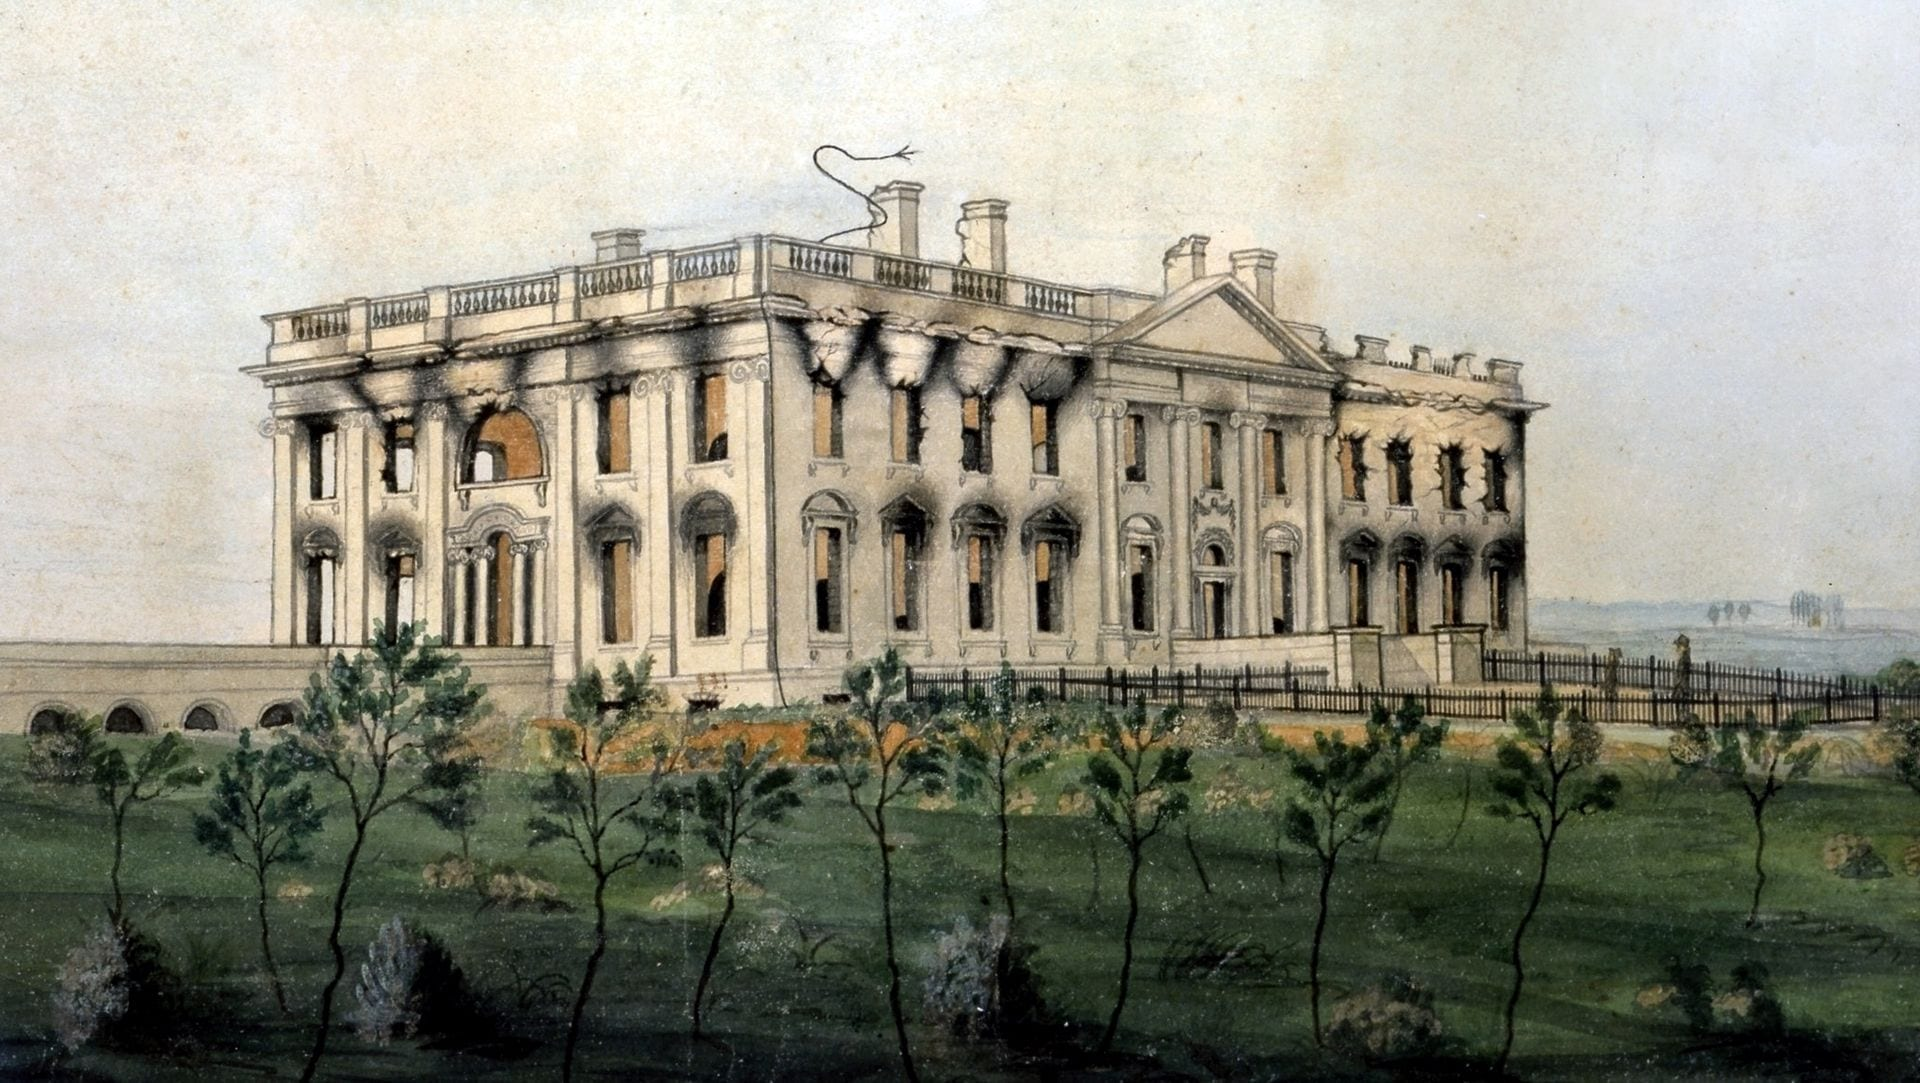 The White House ruins after the conflagration of August 24, 1814. Watercolor by George Munger, displayed at the White House